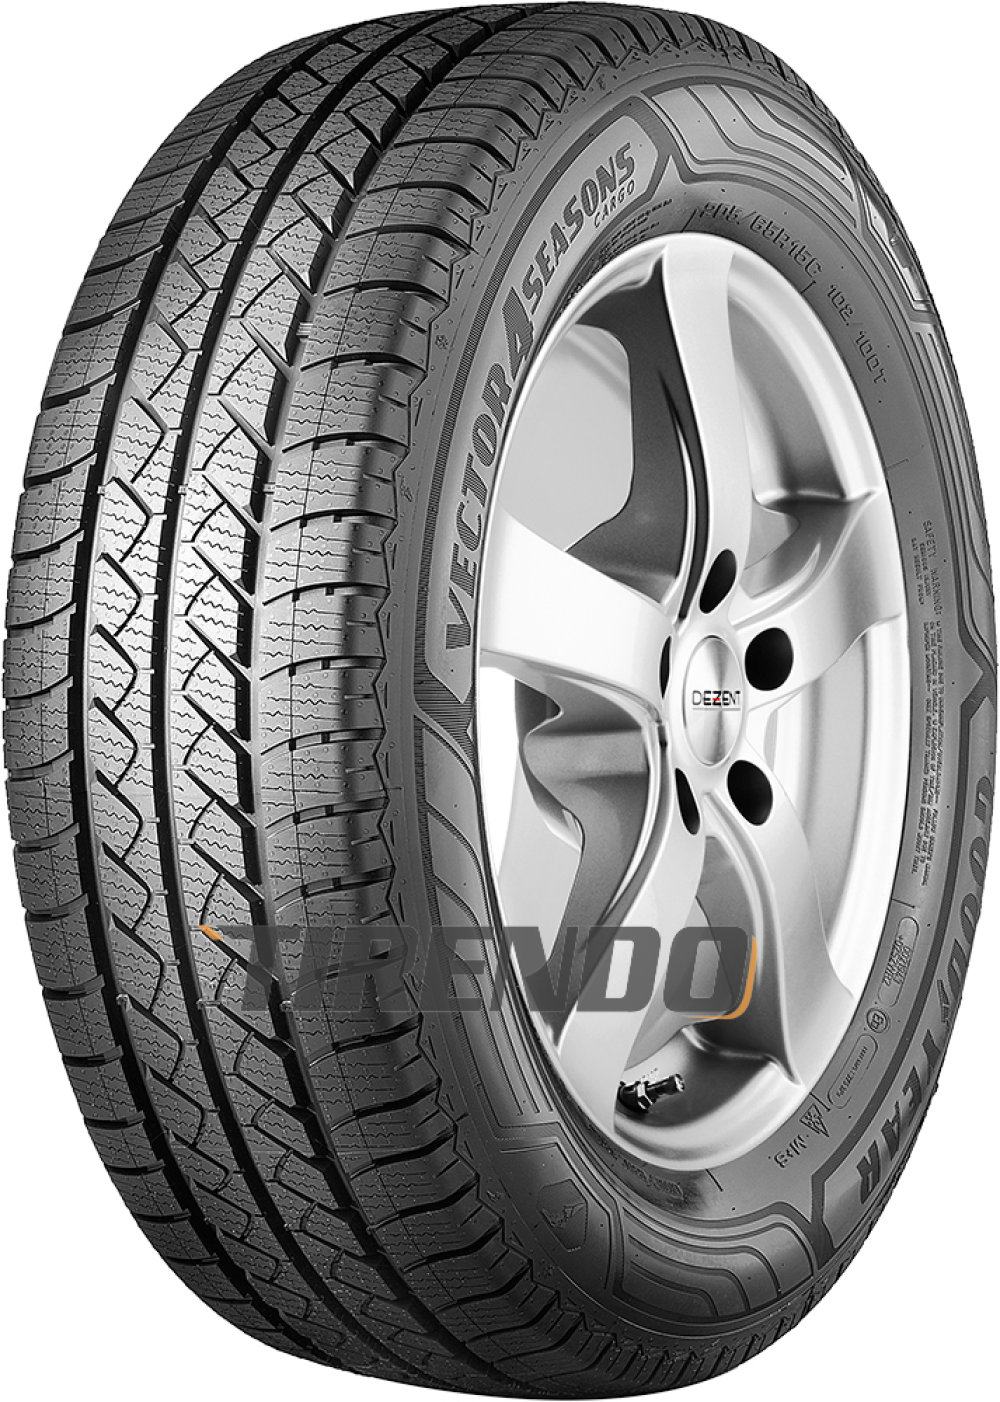 Goodyear Vector 4Seasons Cargo ( 225/65 R16C 112/110R ) von Goodyear